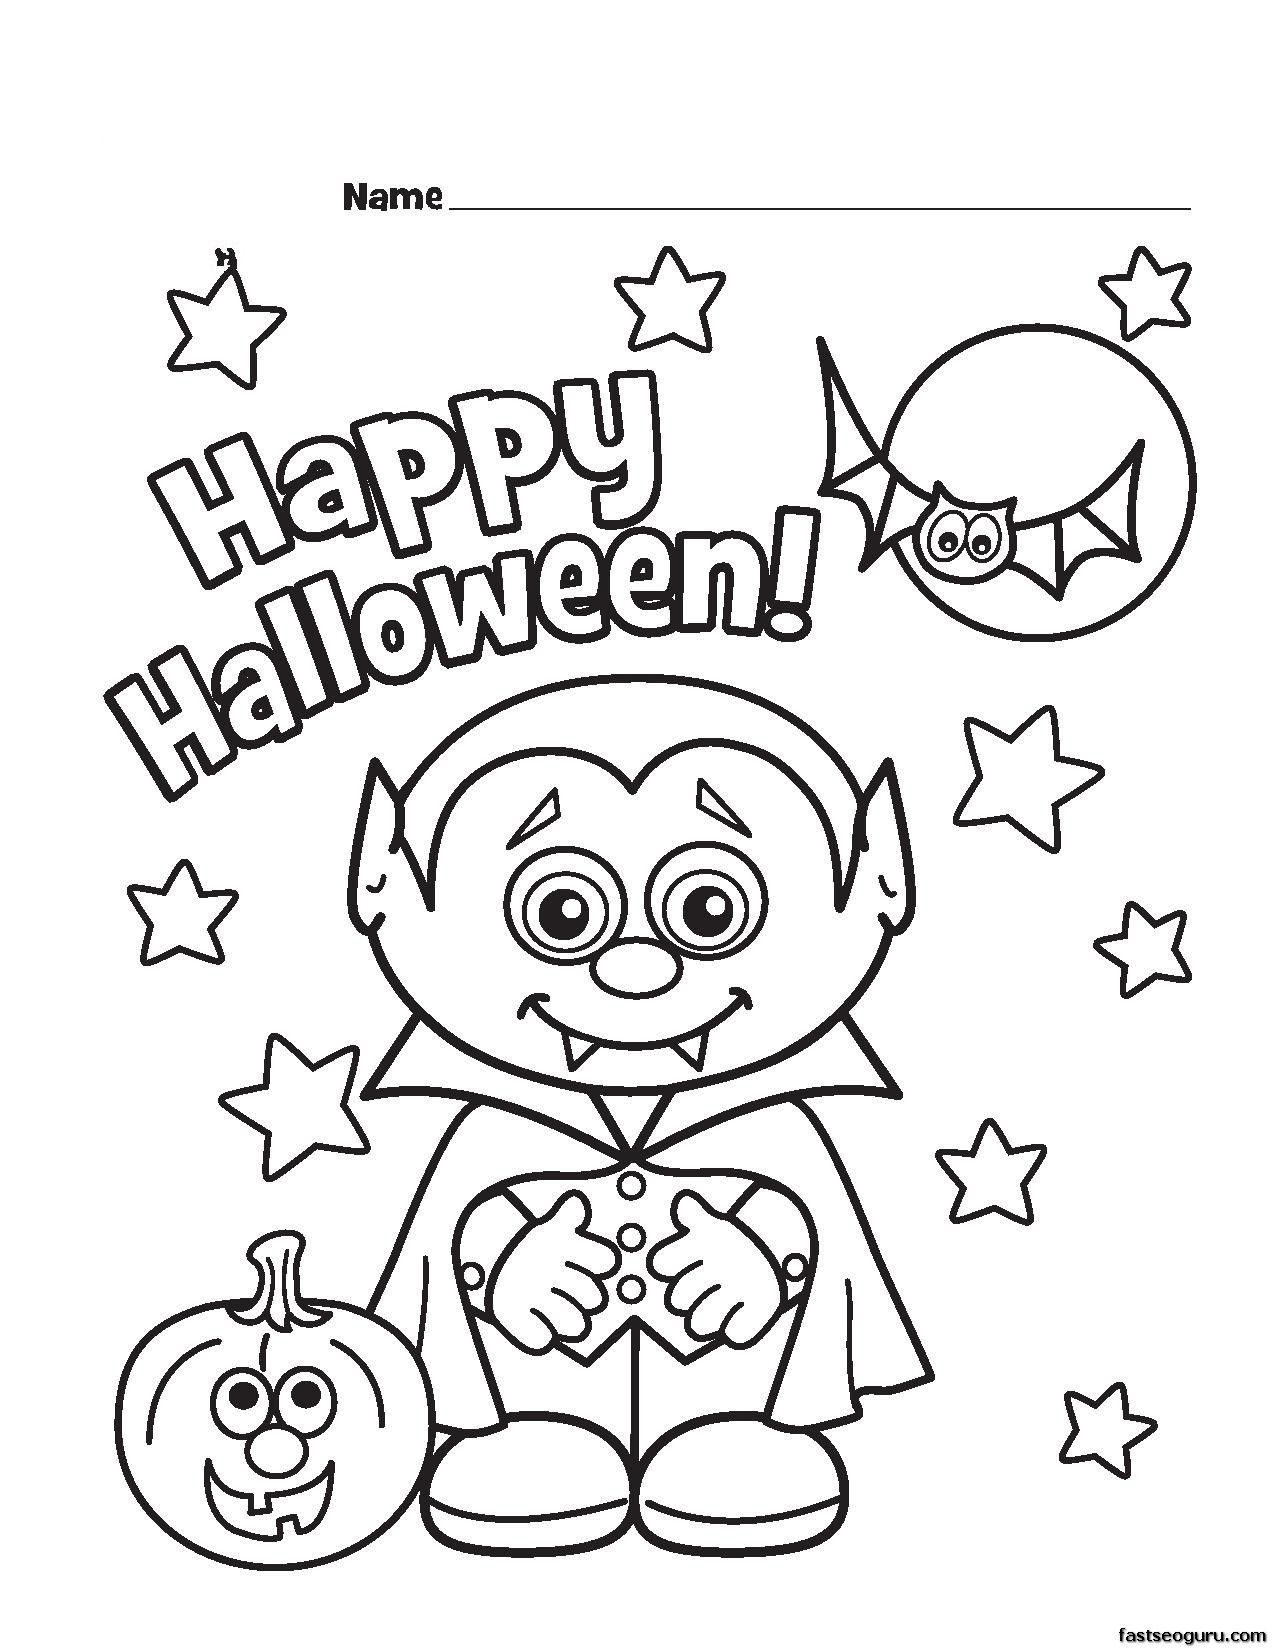 Halloween Vampire Coloring Pages Czfv Jpg 1275 1650 Halloween